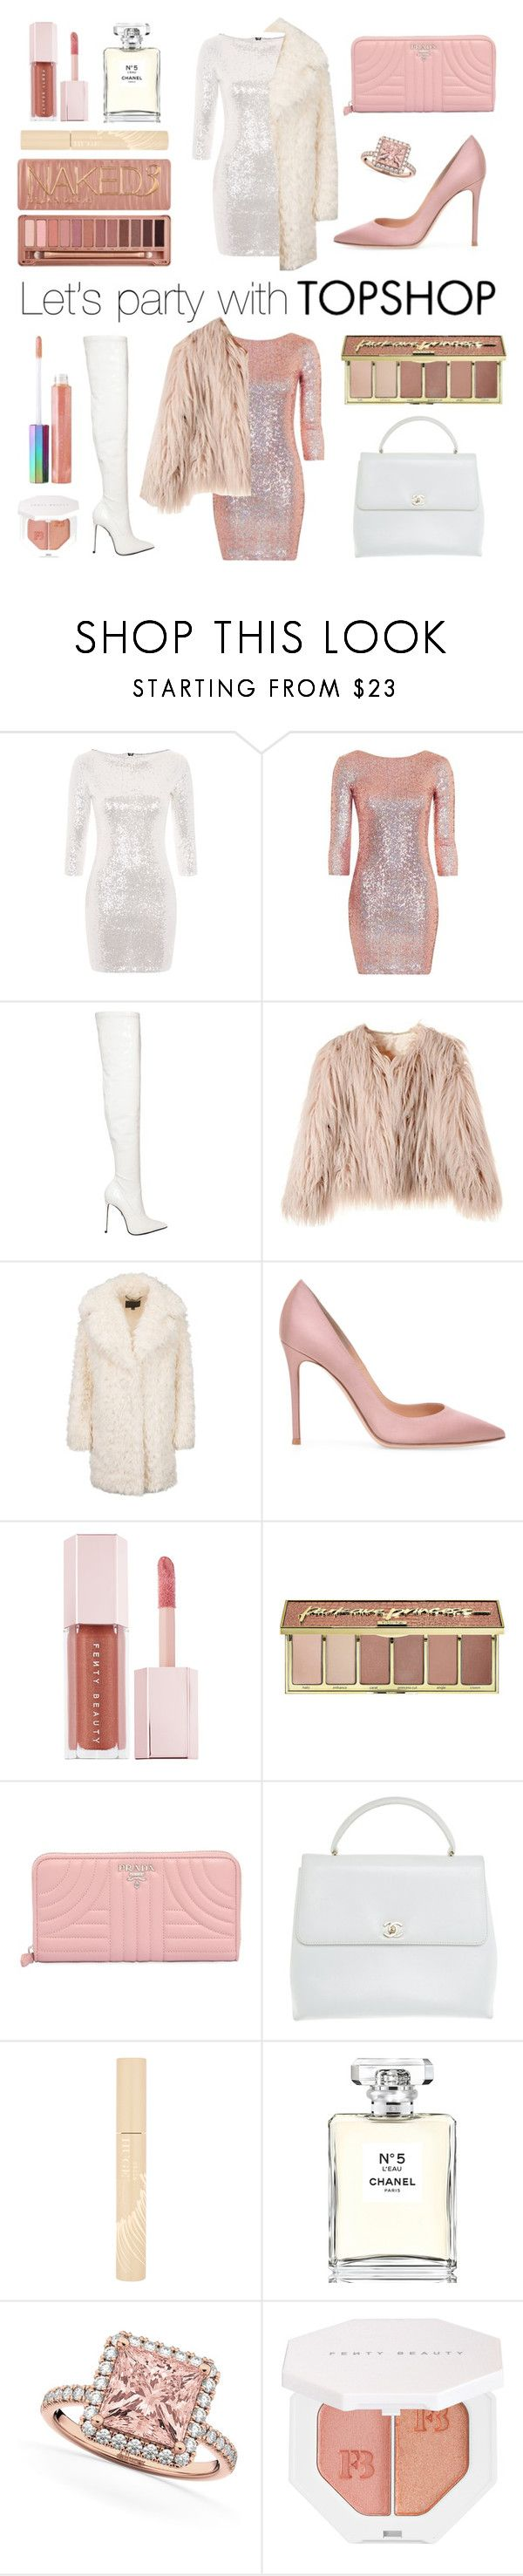 """""""#PolyPresents: Party Dresses"""" by trombone ❤ liked on Polyvore featuring Glamorous, Topshop, Le Silla, Puma, tarte, Urban Decay, Prada, Chanel, Stila and Allurez"""